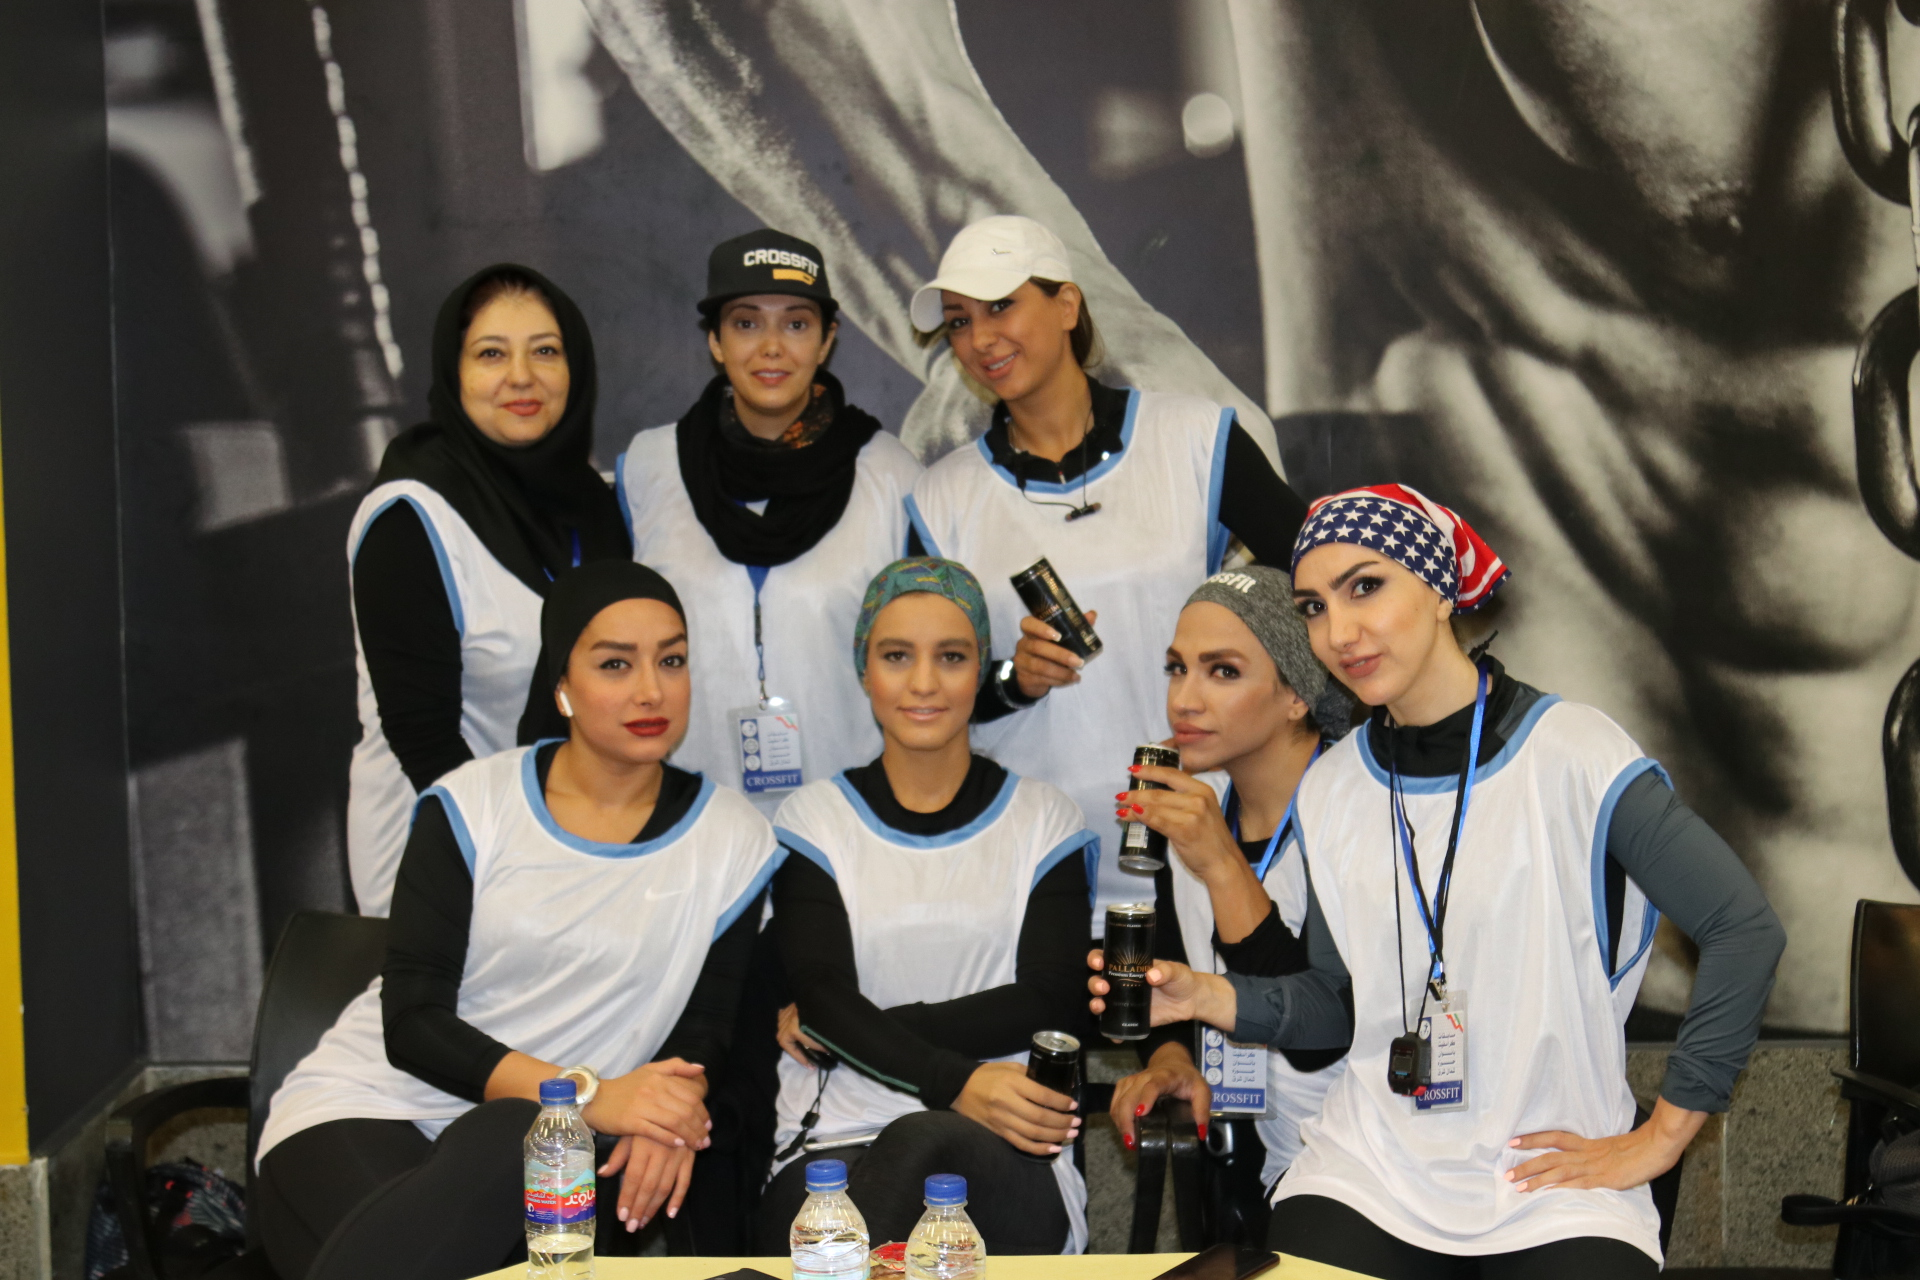 Women's Crossfit Competition Northeast of Tehran